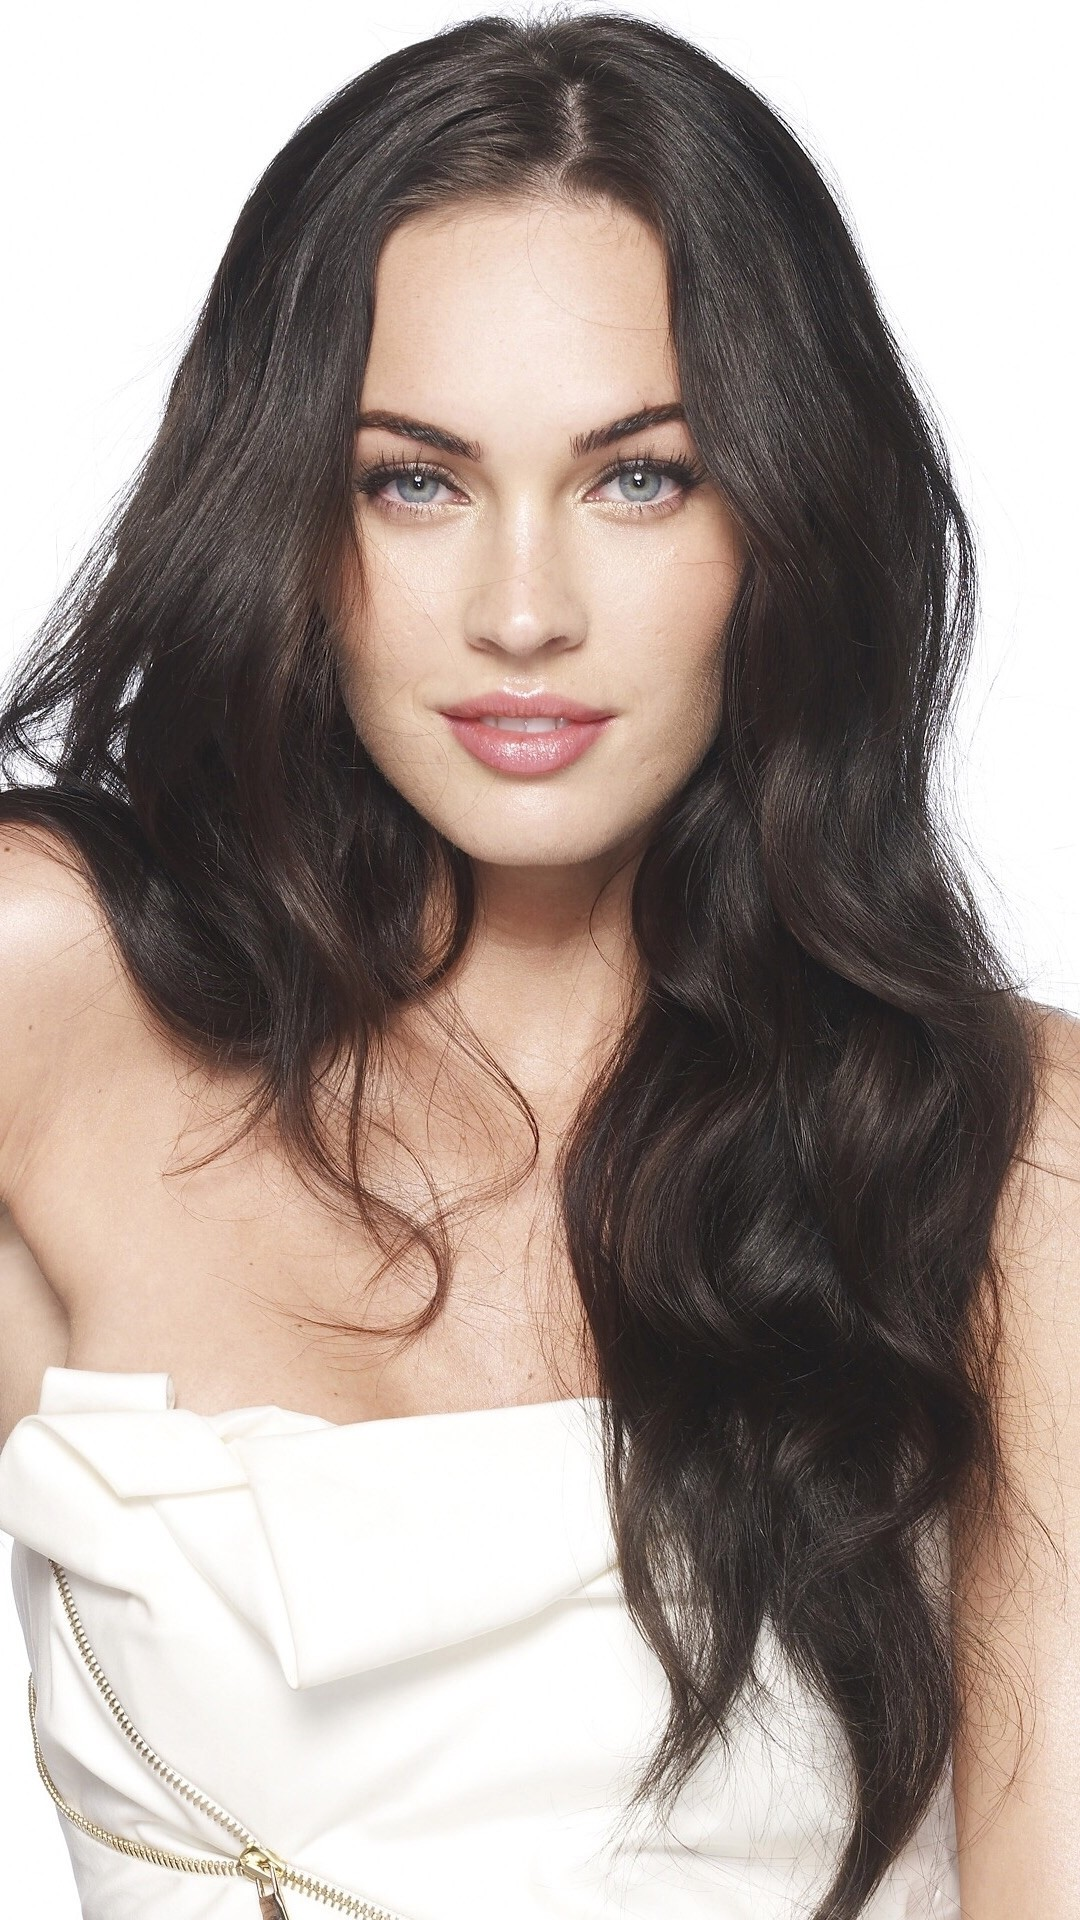 Megan Fox Wallpaper iPhone 5 ·① Megan Fox